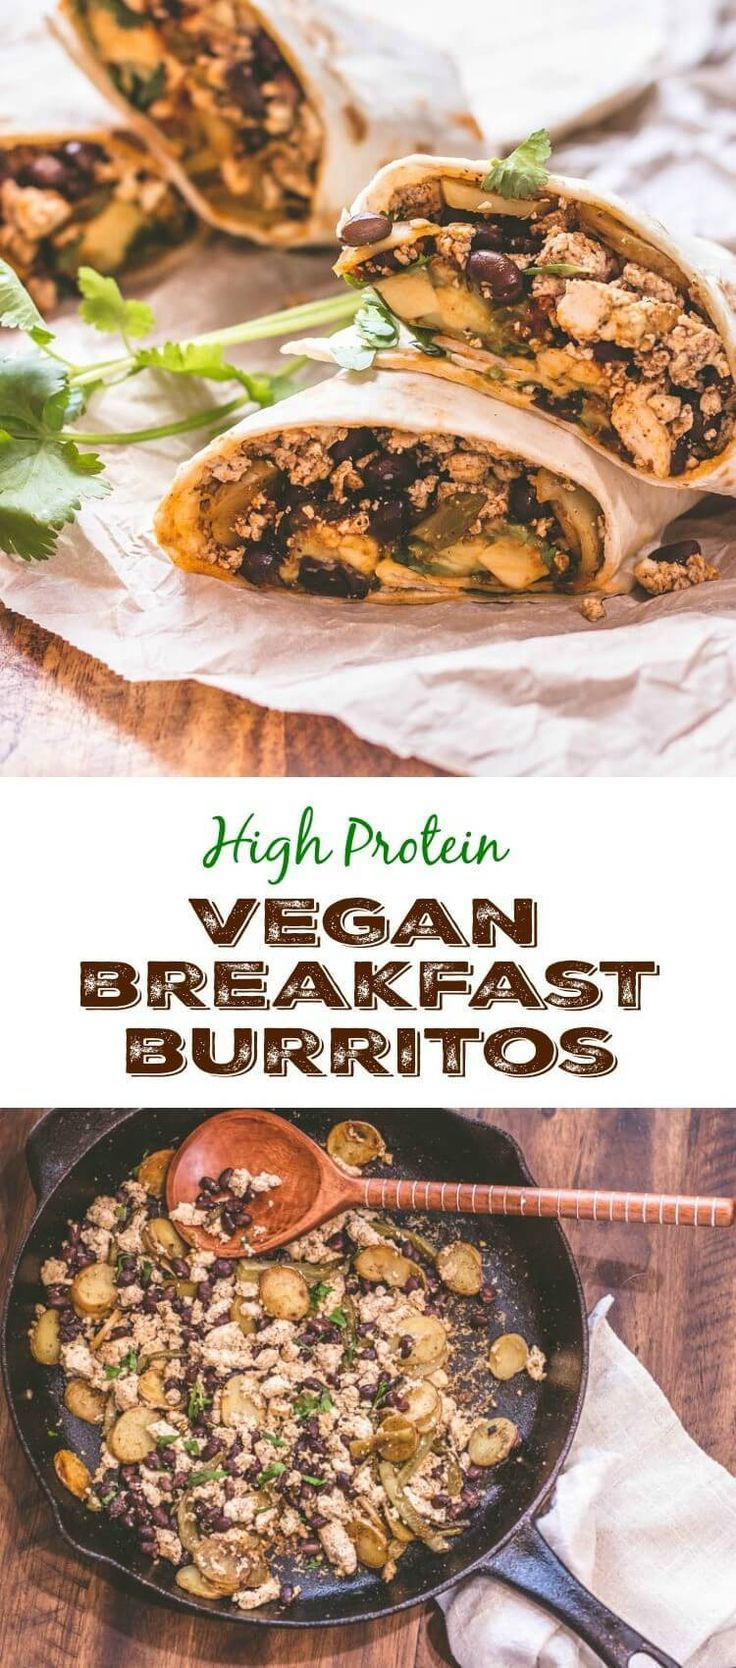 Vegetarian Protein Breakfast  17 Best images about Ve arian on Pinterest